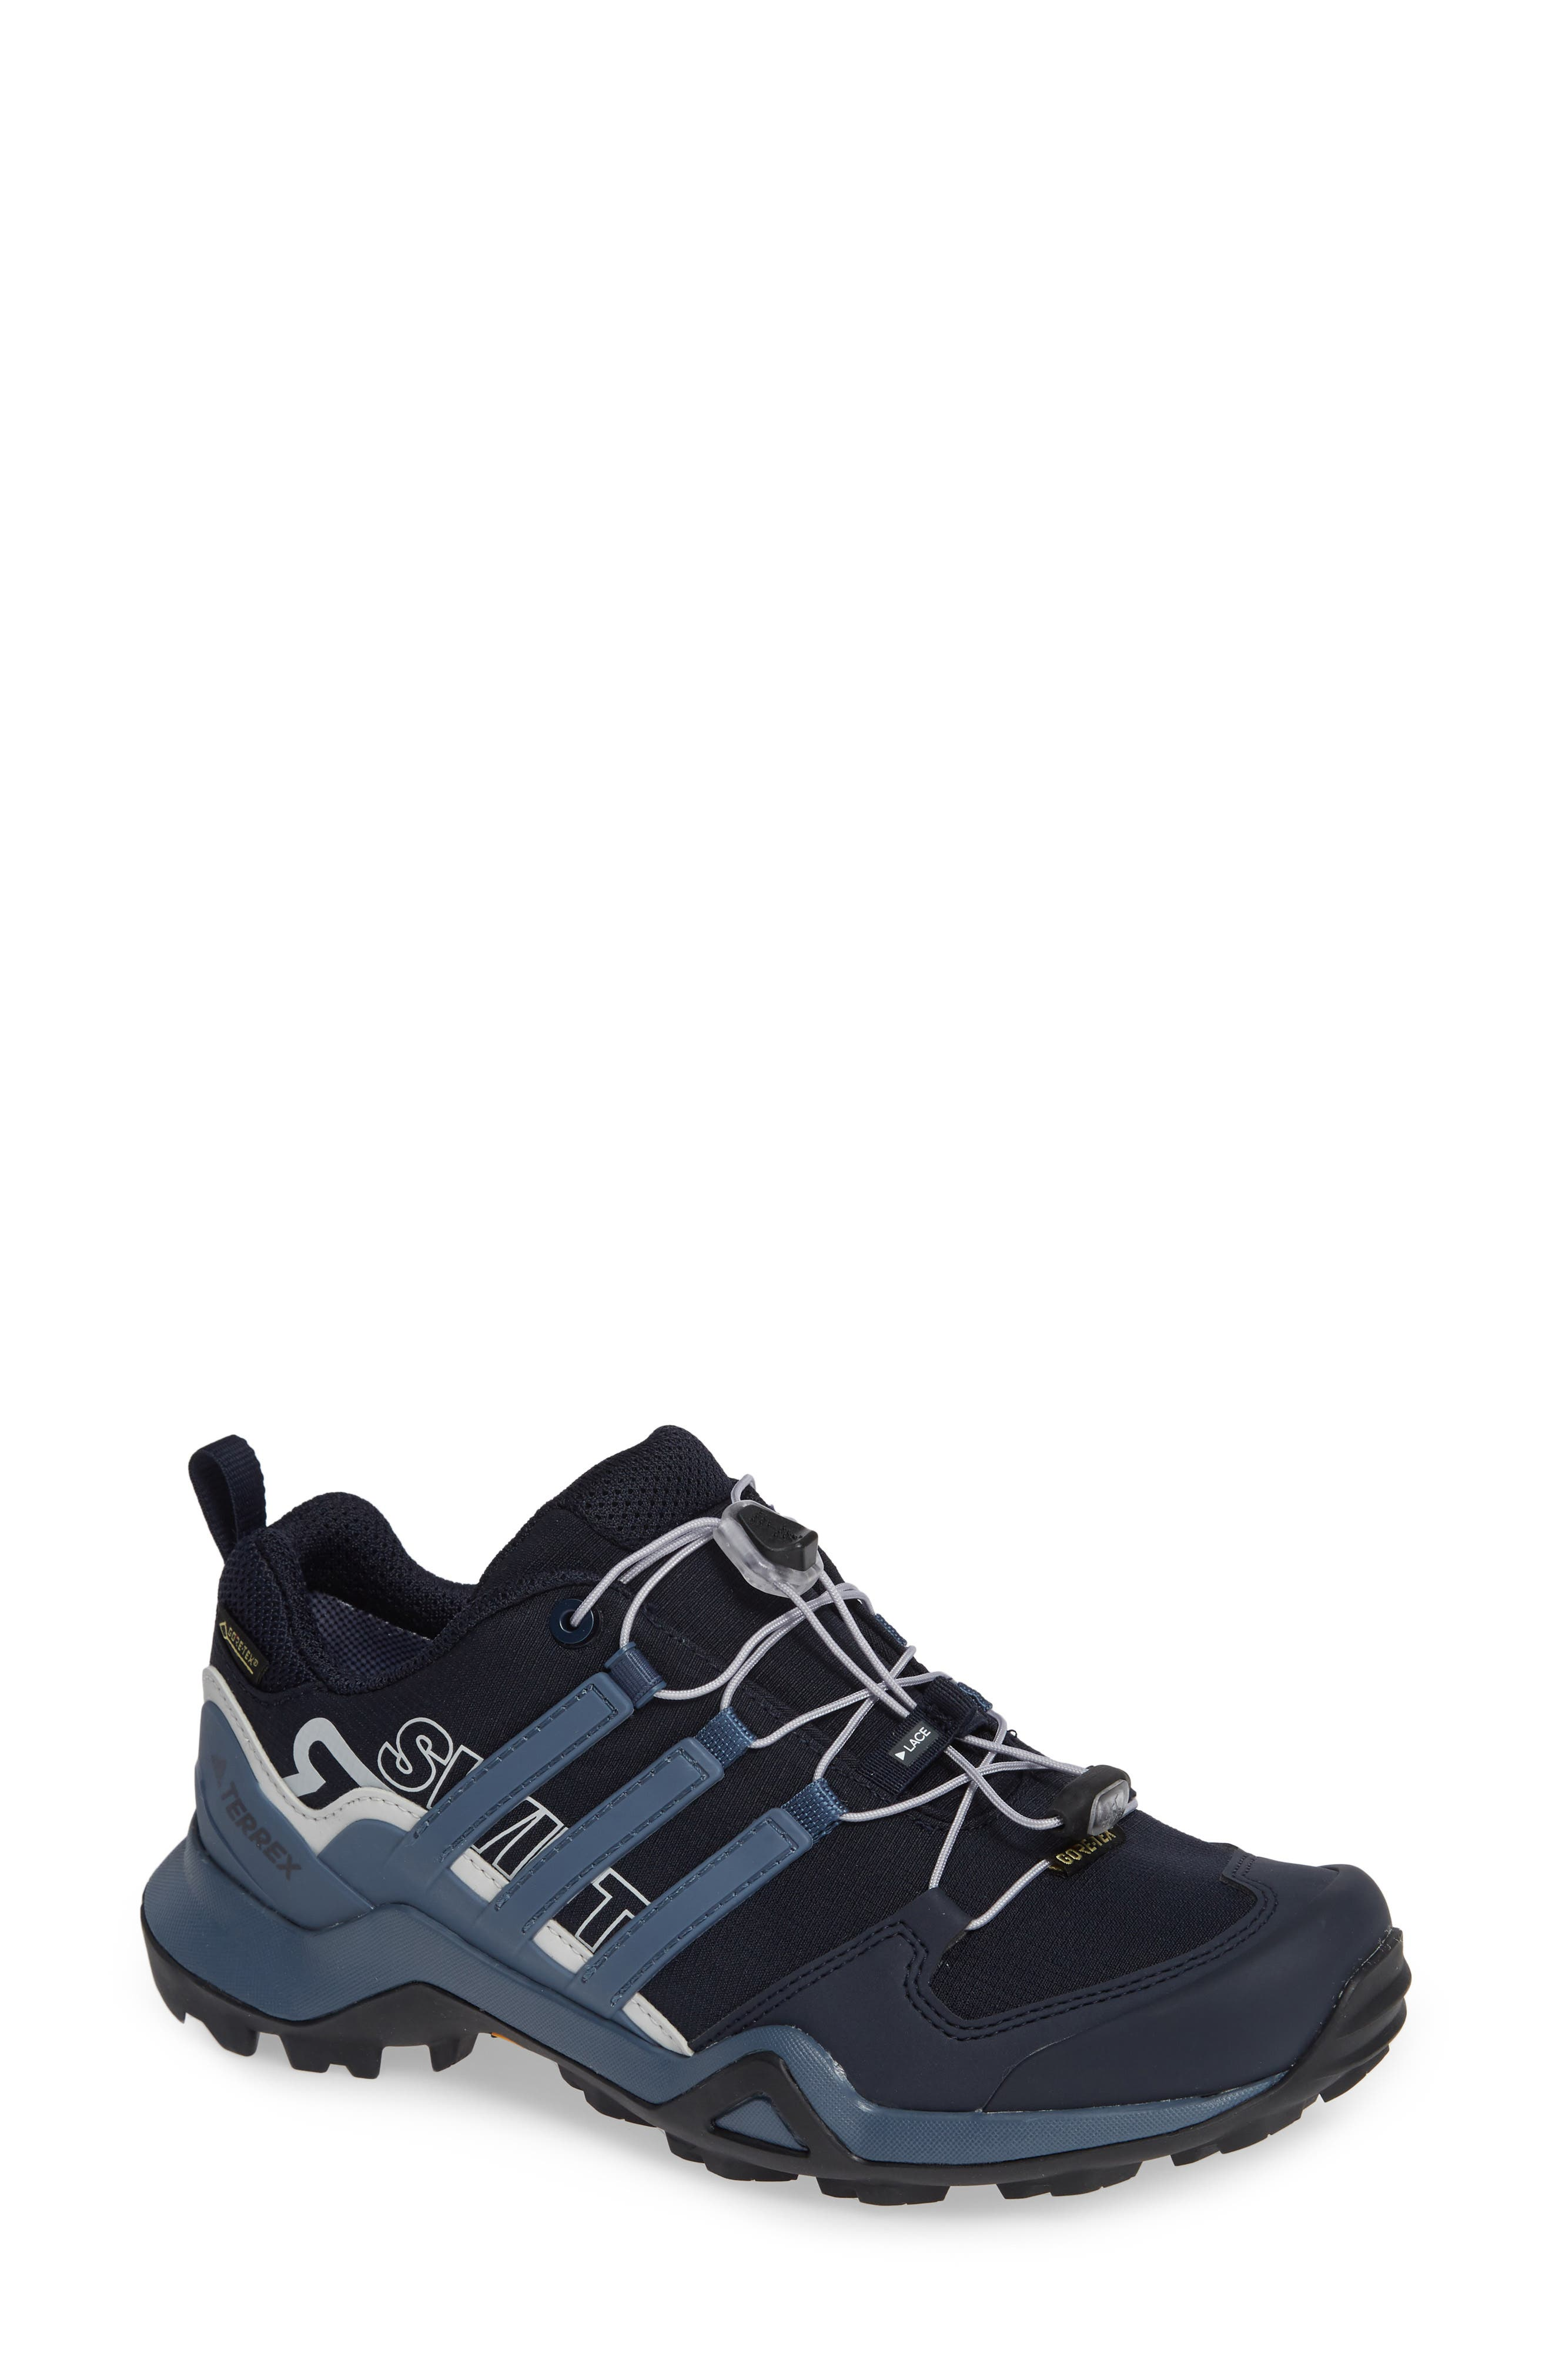 Terrex Swift R2 Gore-Tex<sup>®</sup> Hiking Shoe,                             Main thumbnail 1, color,                             LEGEND INK/ TECH INK/ GREY